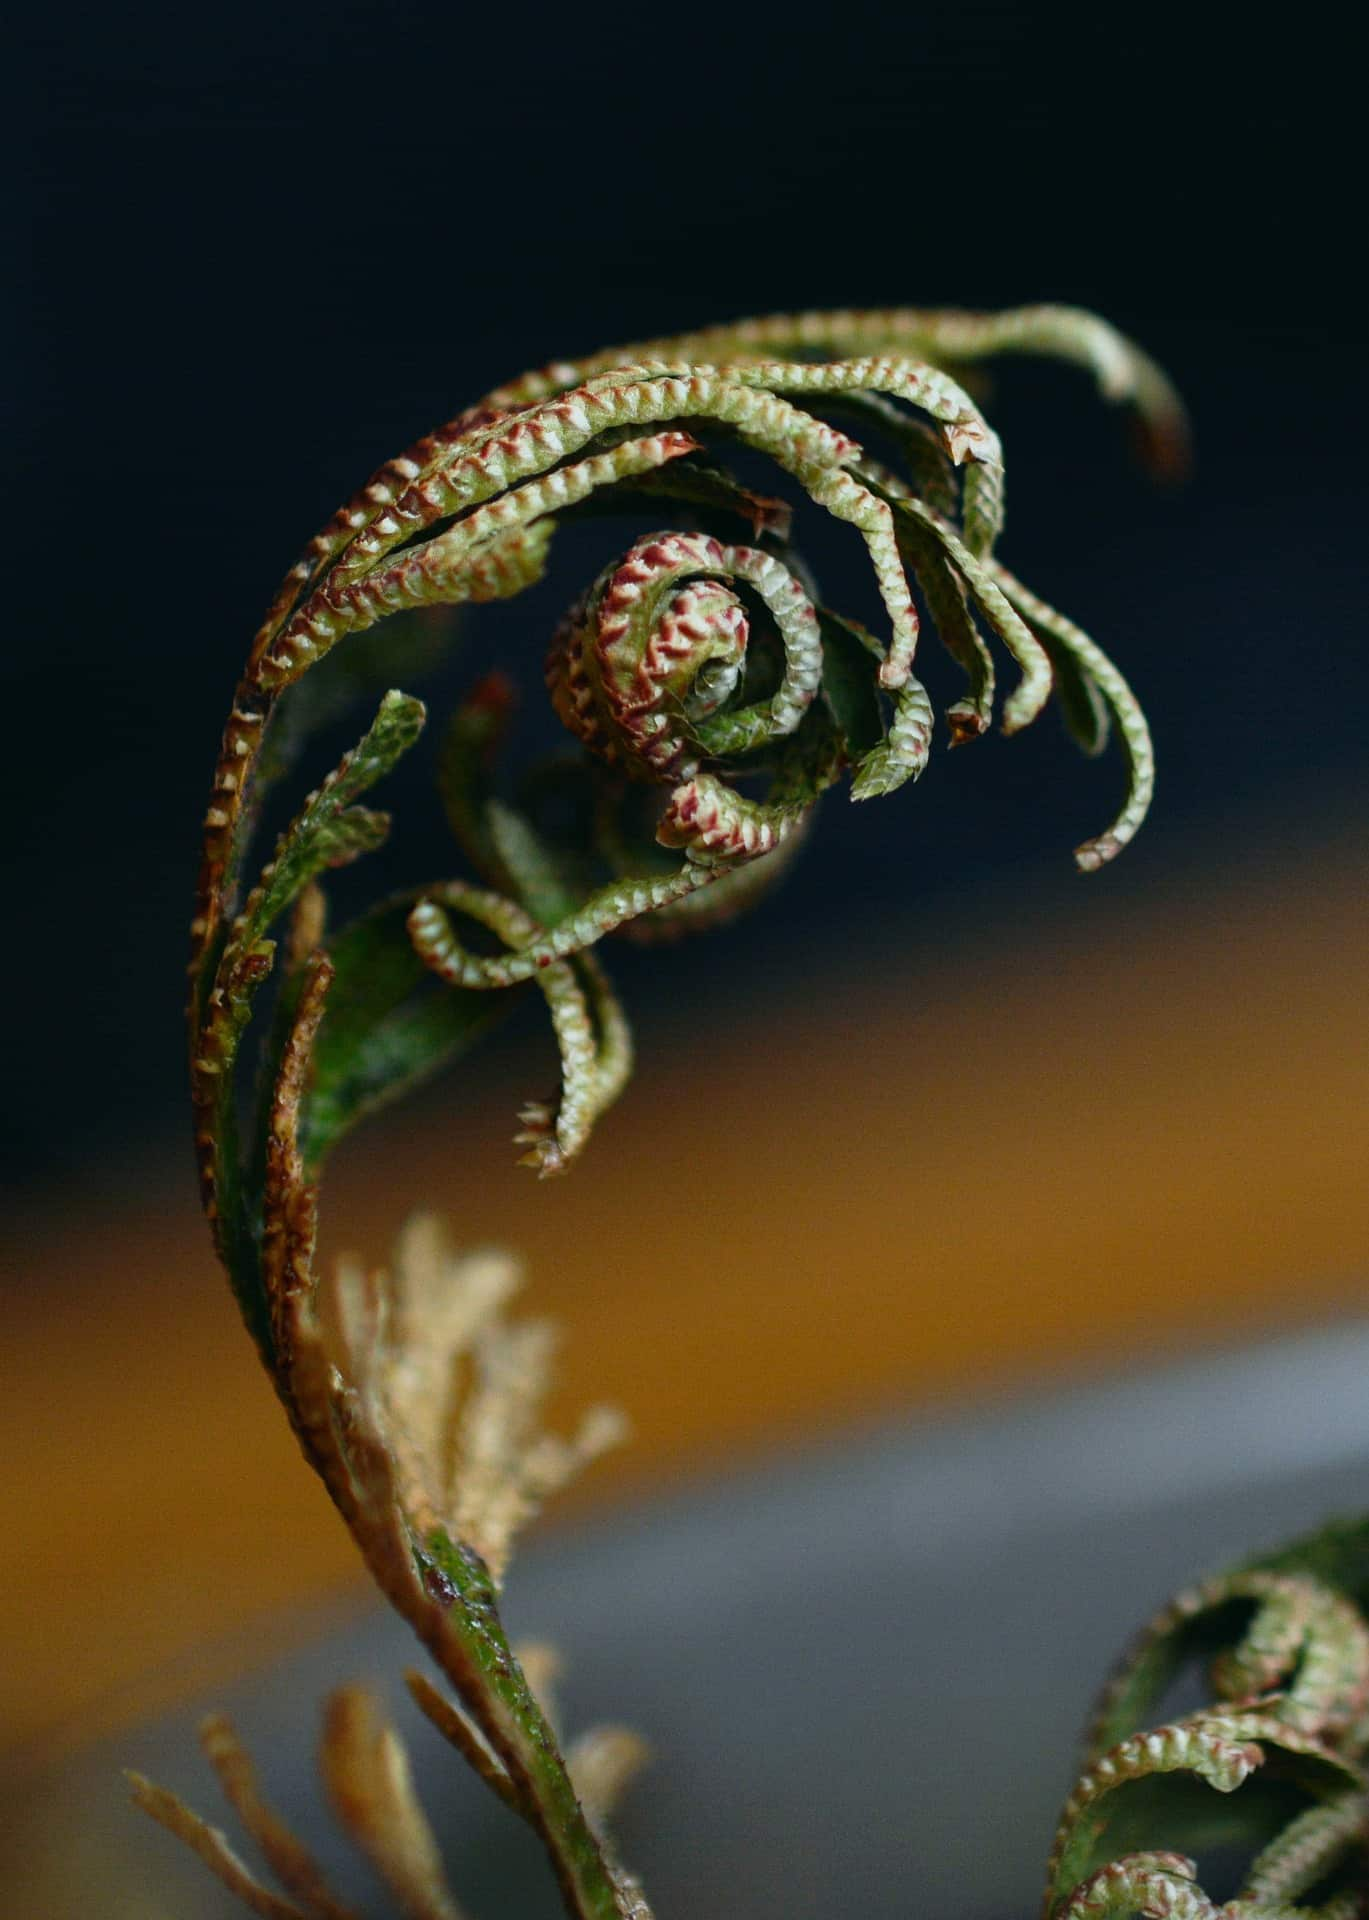 resurrection plant close up, uncurling